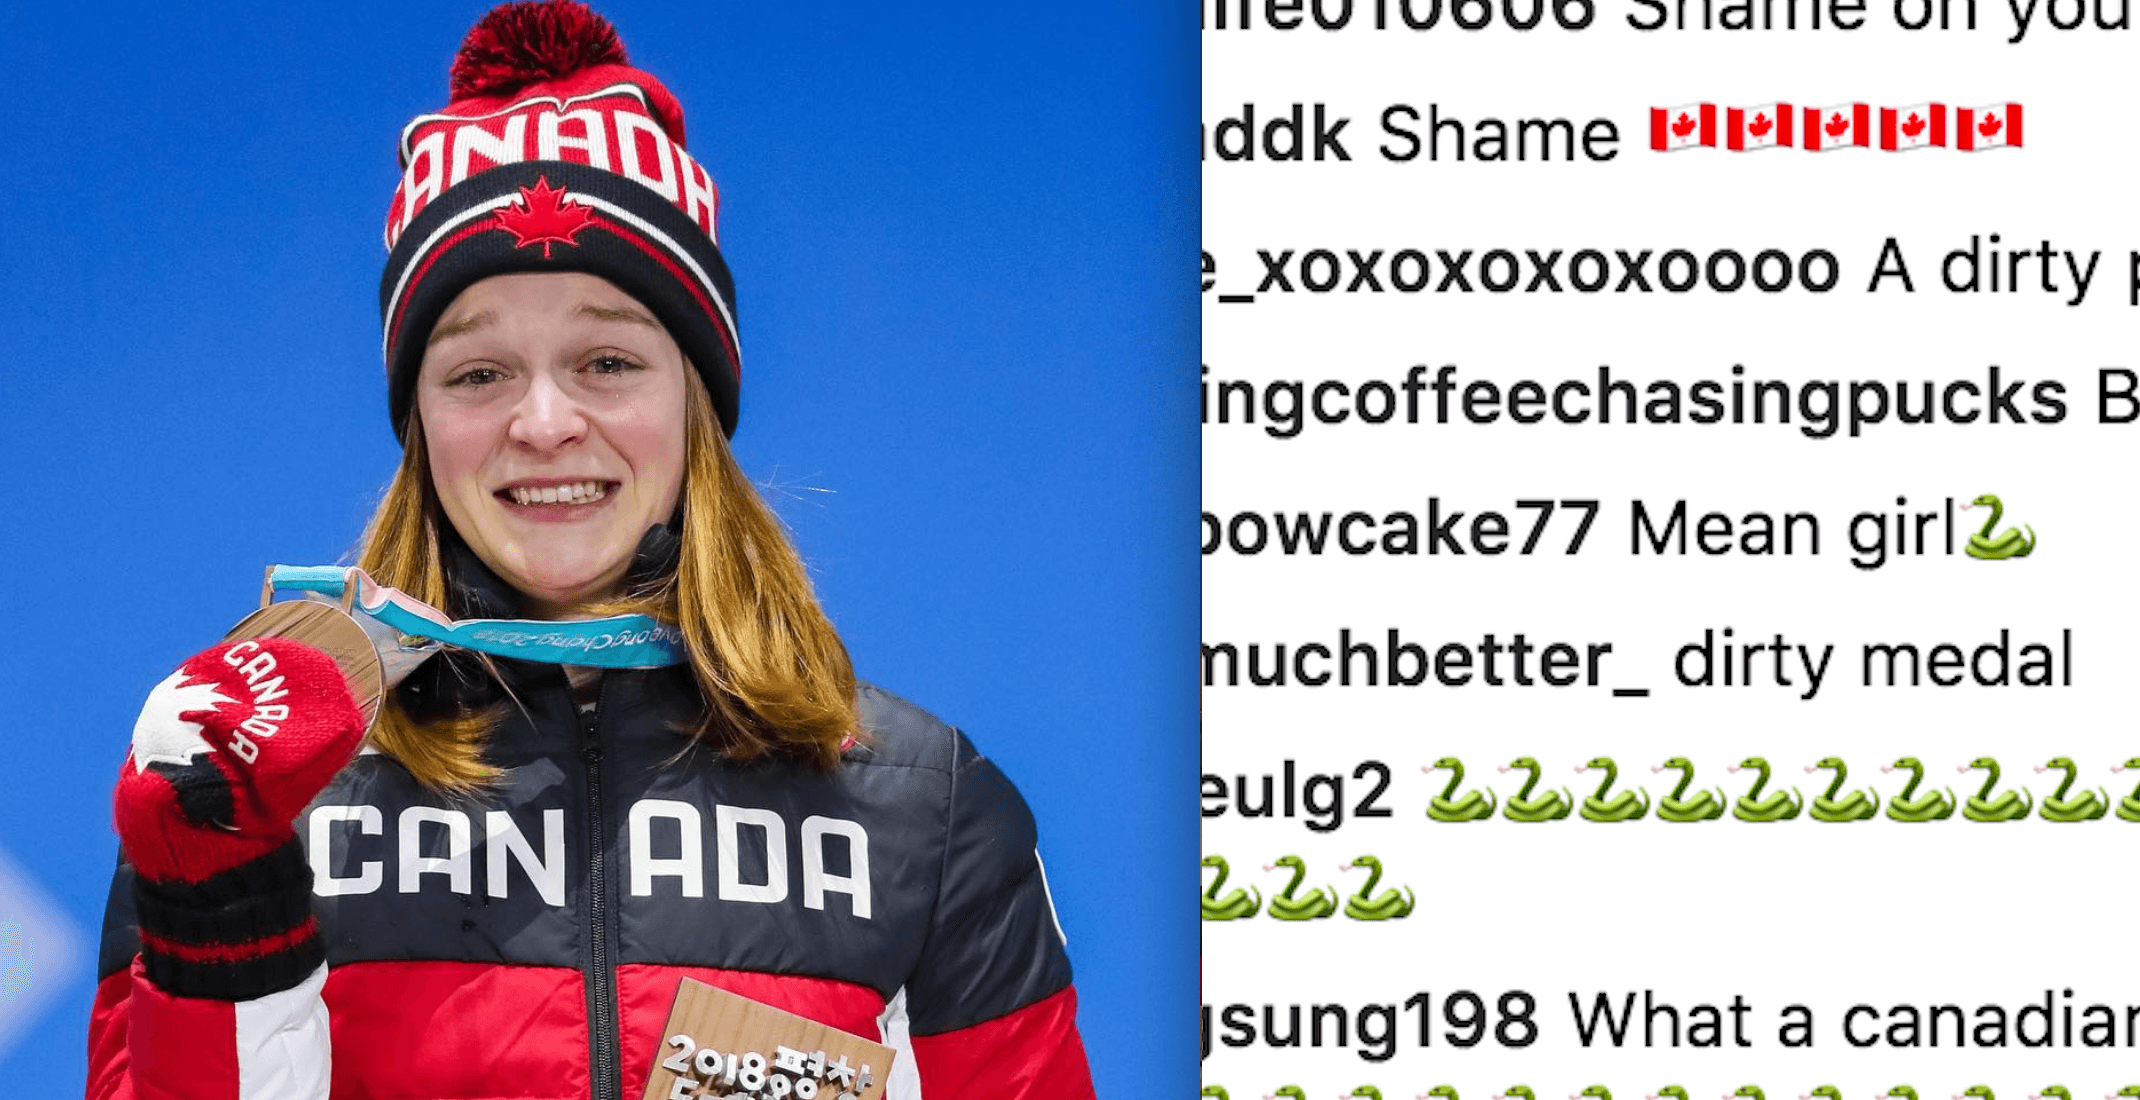 Canadian speed skater Kim Boutin receives online threats after medal win